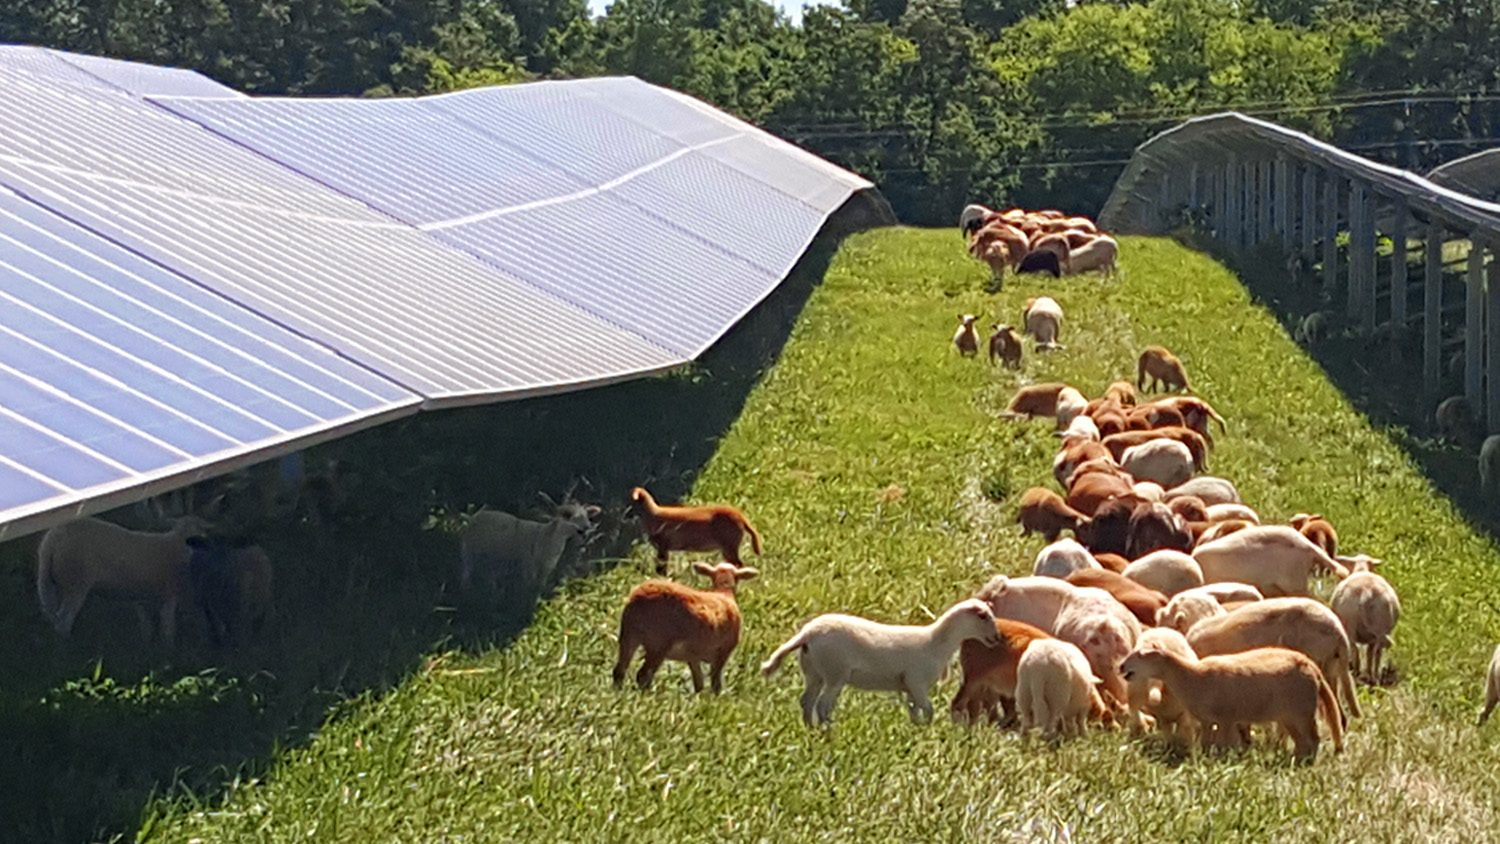 Sheep graze between rows of solar panels.